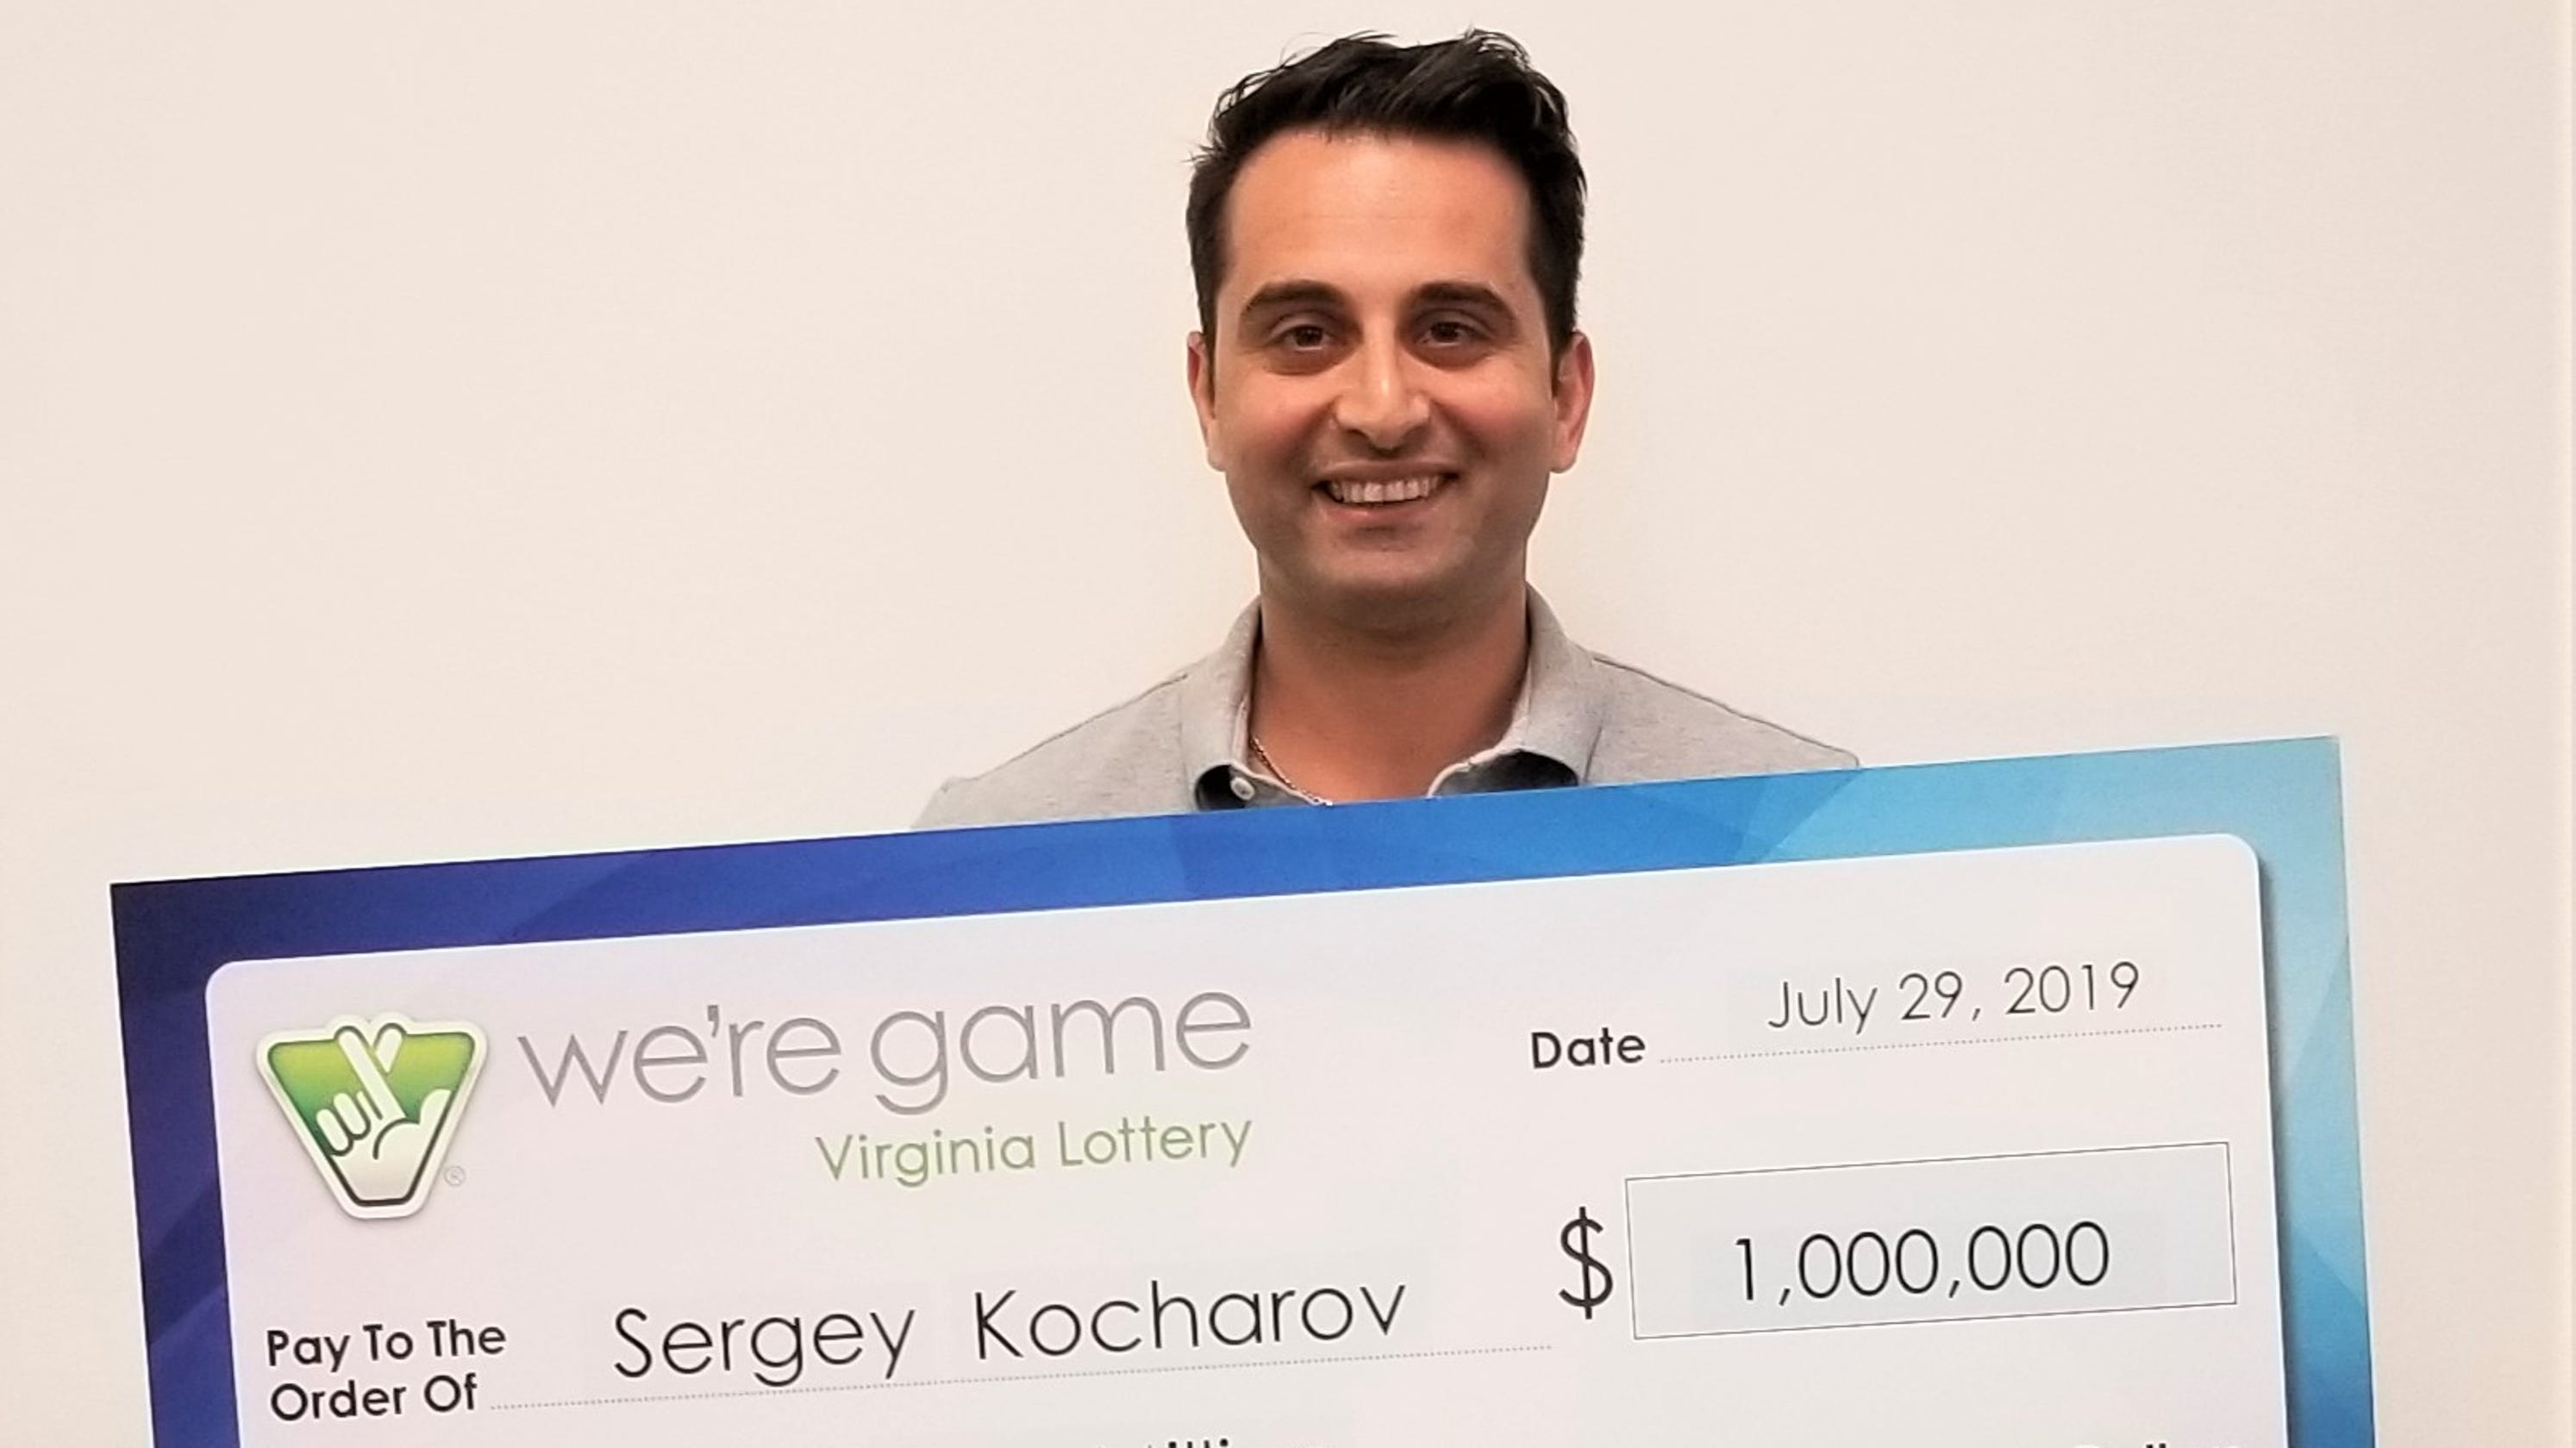 Washington Capitals executive Sergey Kocharov wins $1 million lottery prize